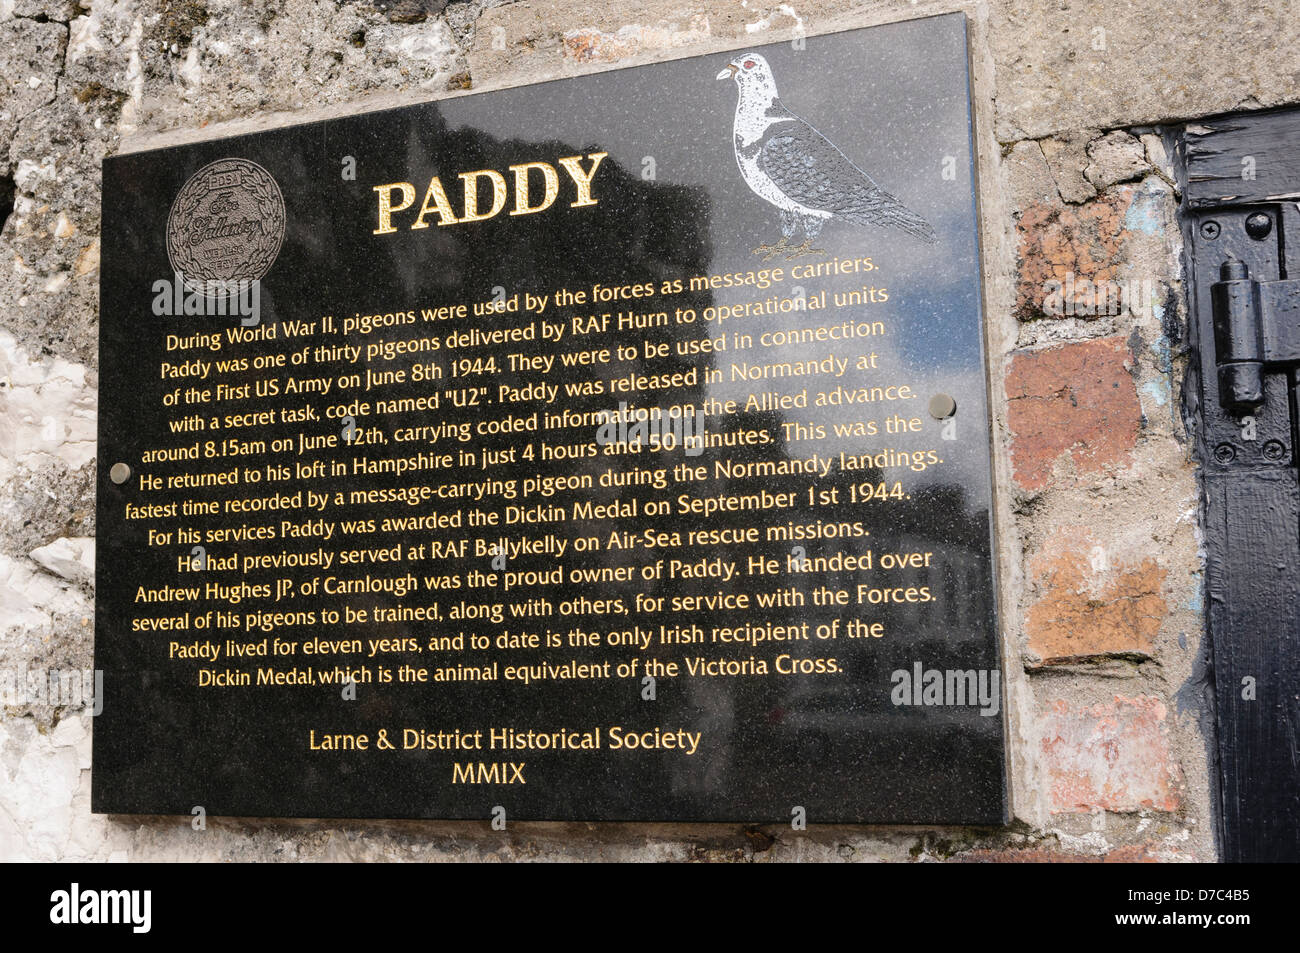 Plaque erected to highlight the 'bravery' of a pigeon named 'Paddy' during World War 2 - Stock Image